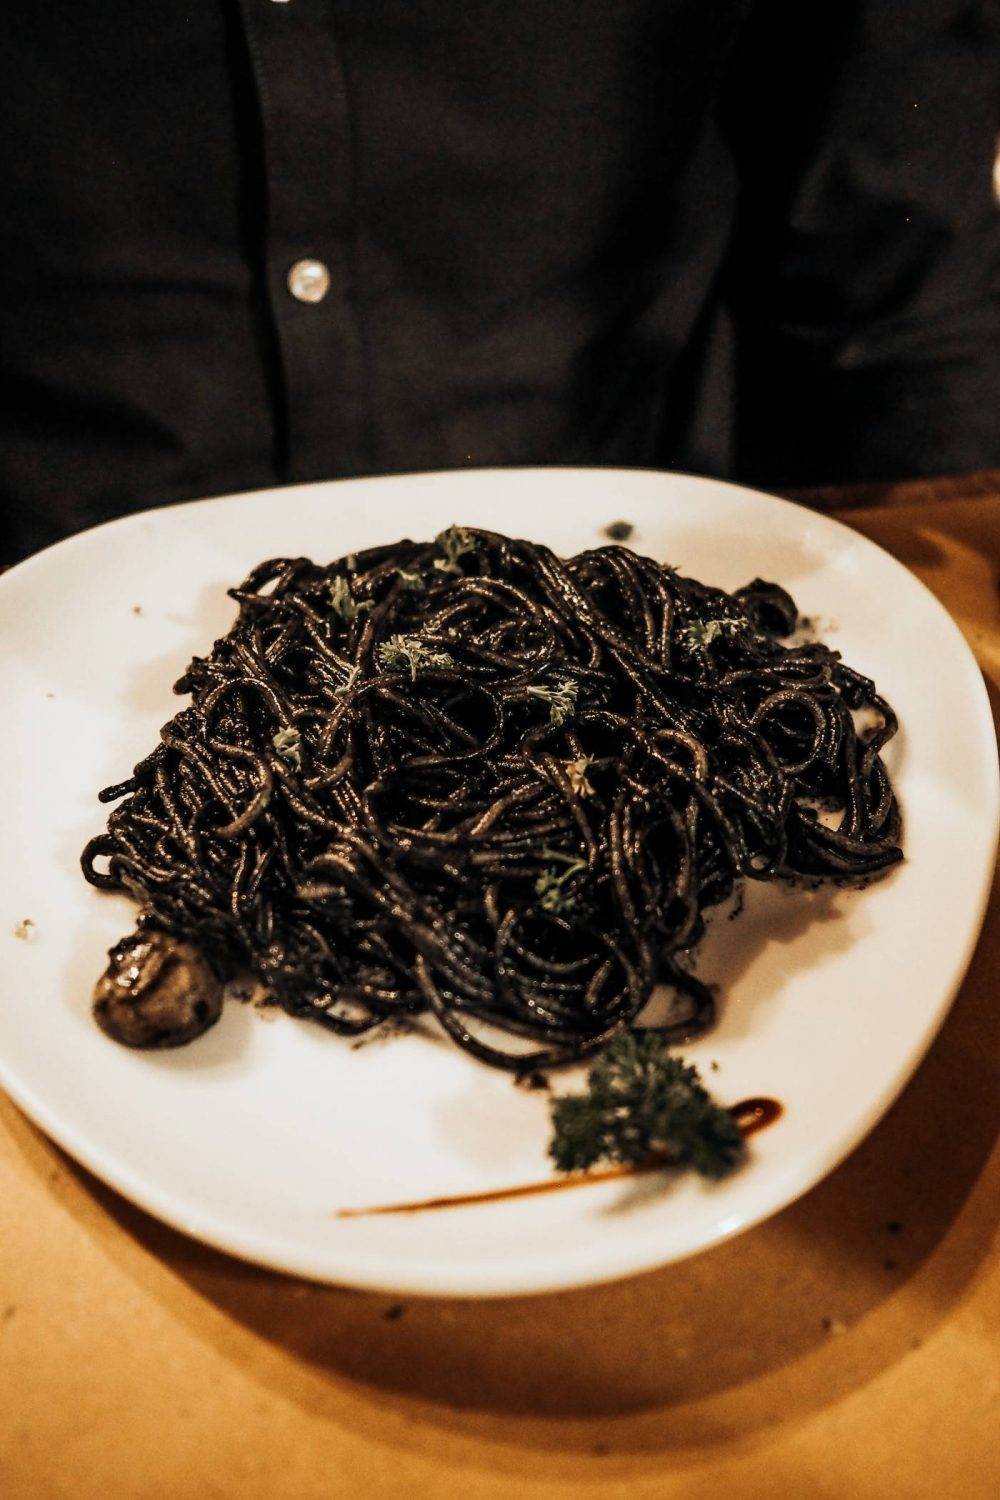 Squid ink pasta at Pan e Vino San Daniele, Venice